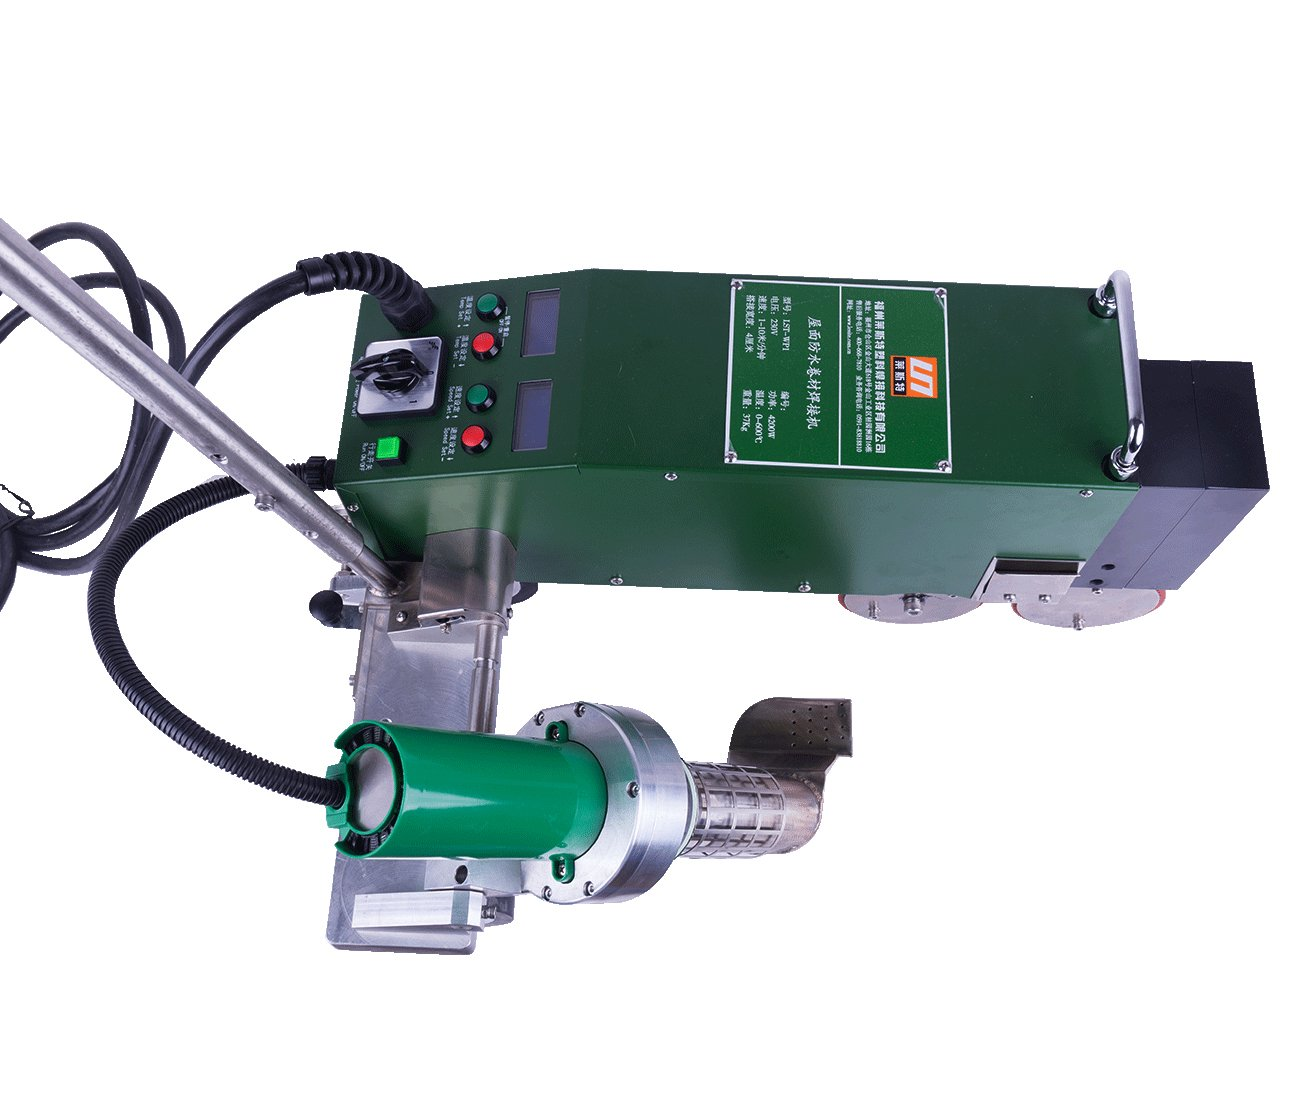 TPO PVC Roof Waterproofing Membrane Hot Air Welding Machine - - Amazon.com